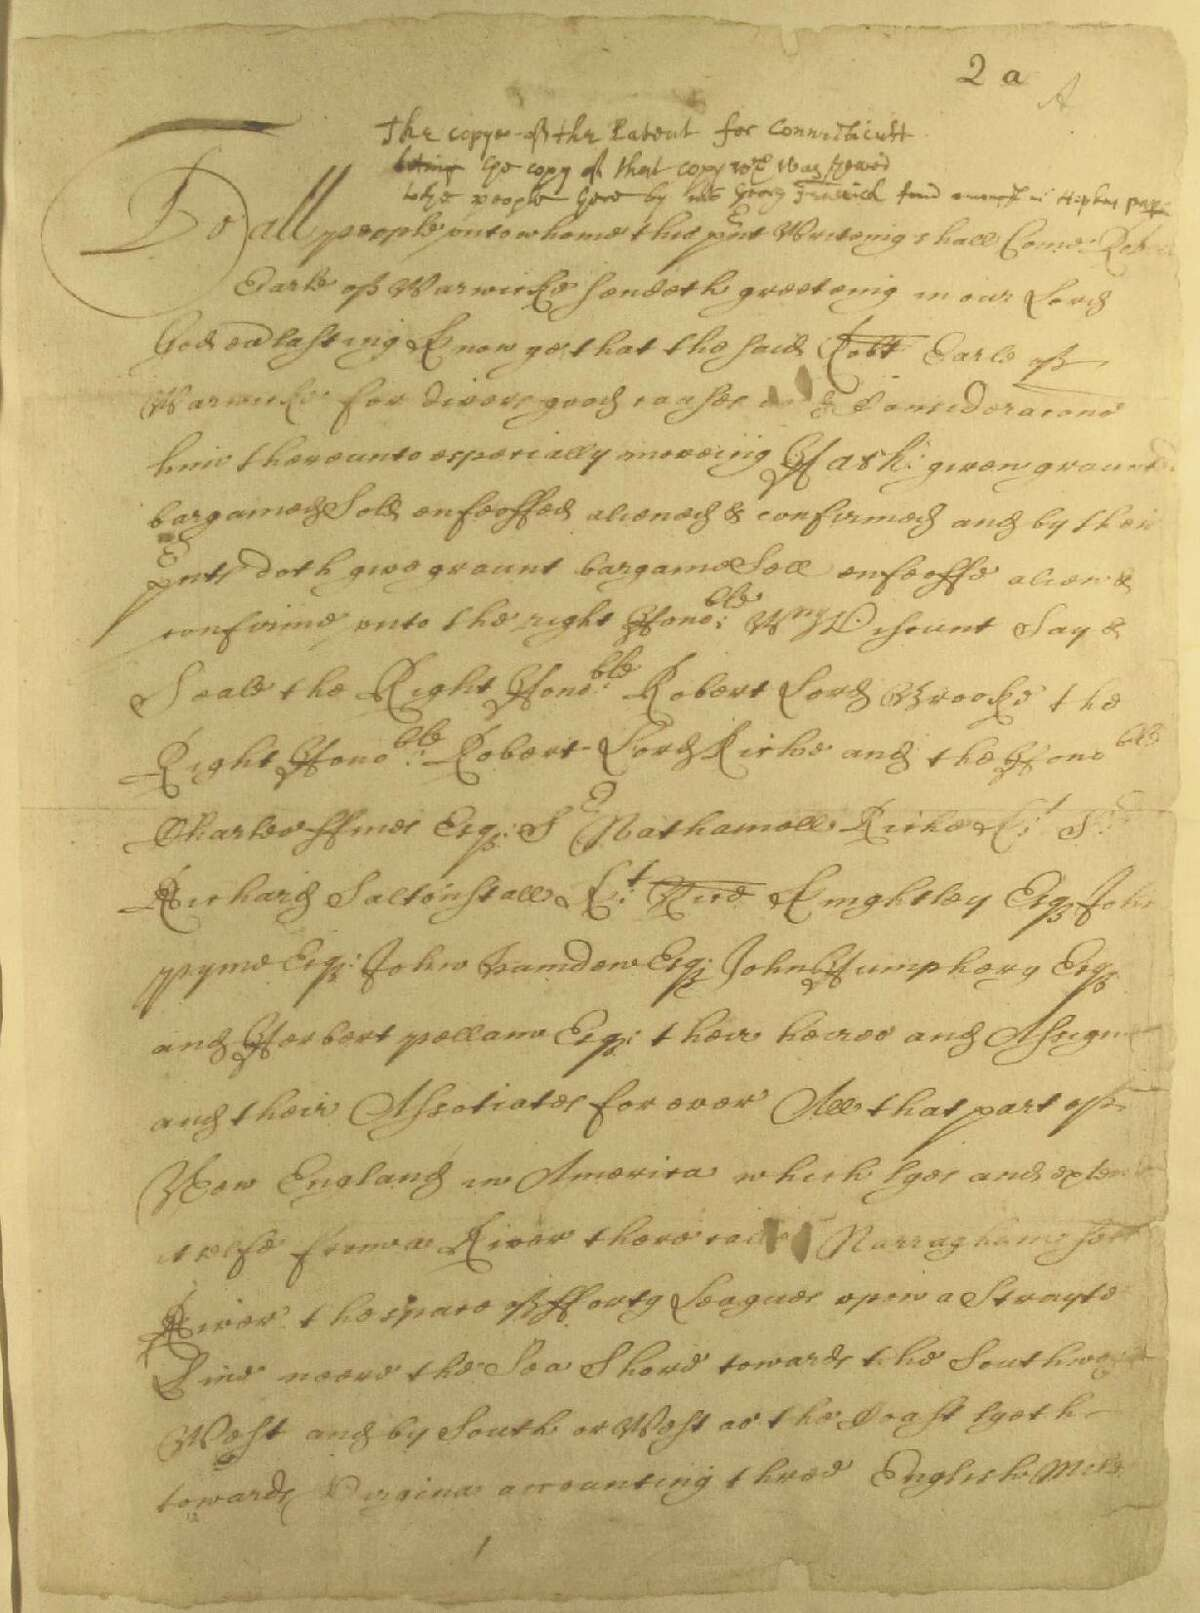 A copy of Connecticut's royal charter of 1662.